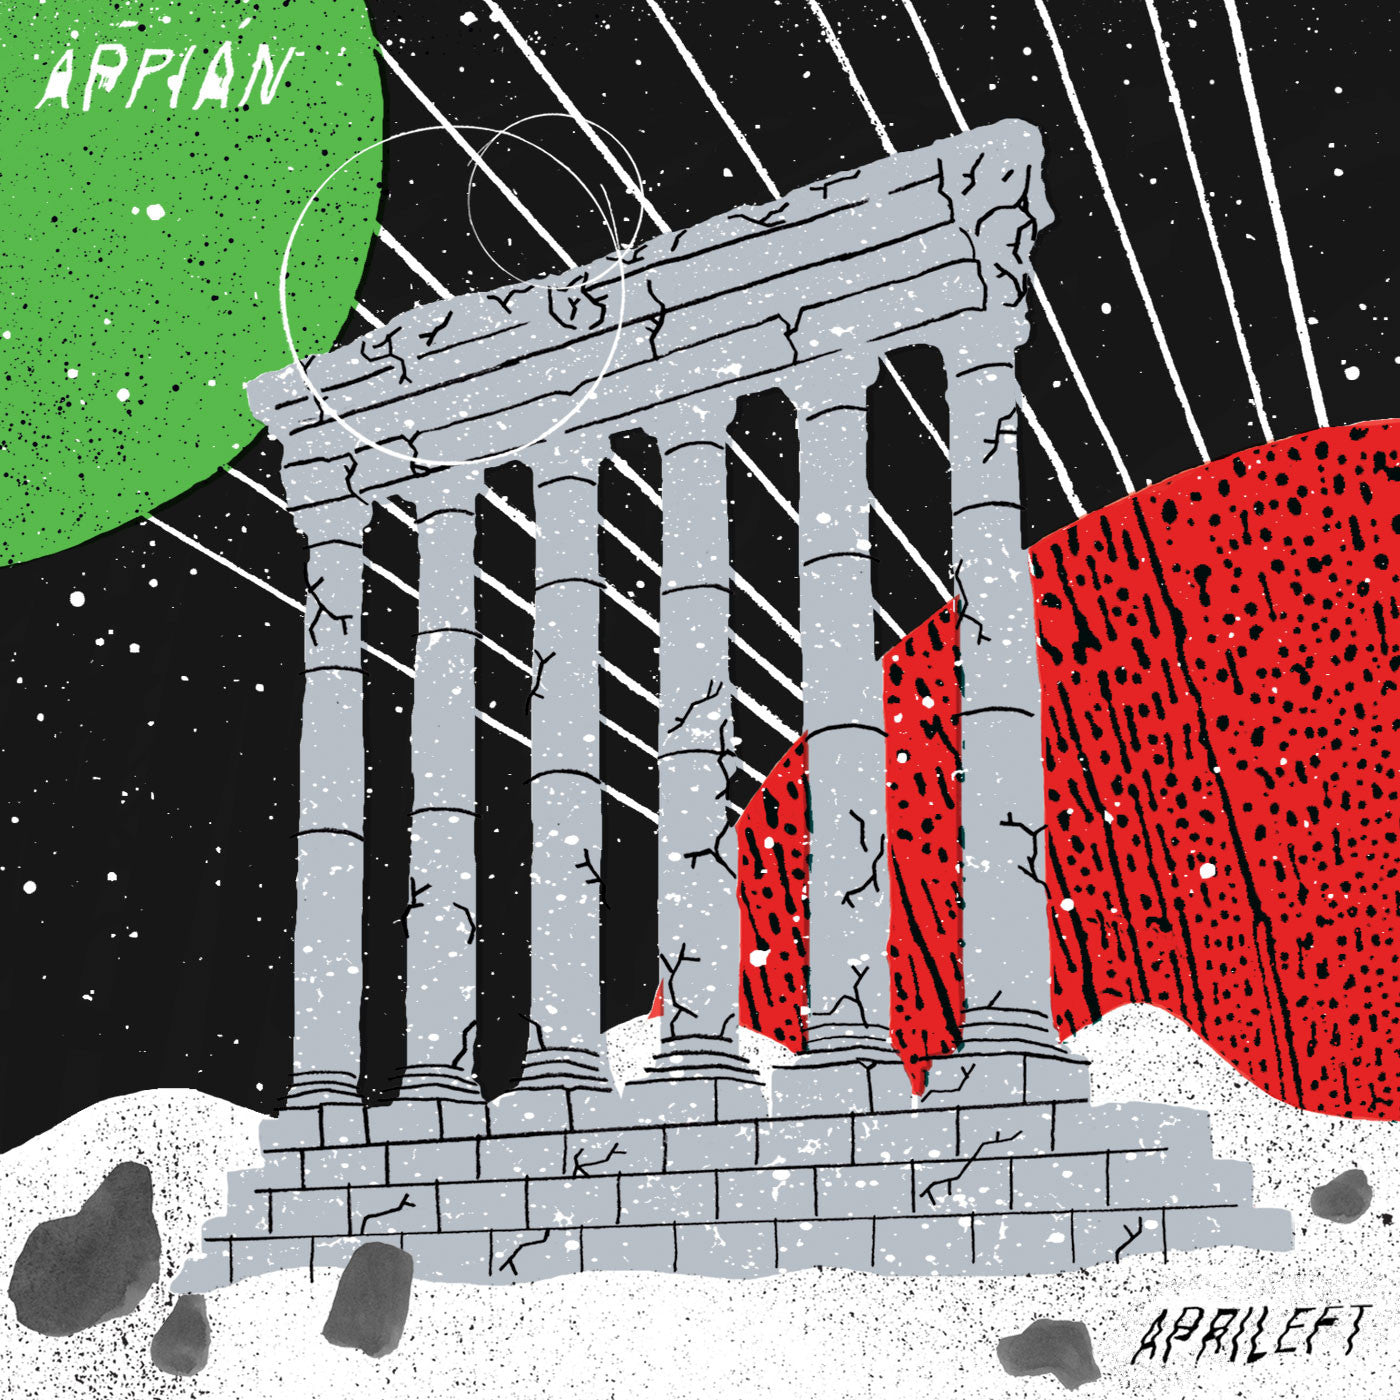 Appian - Aprileft (CD Album) - Unearthed Sounds